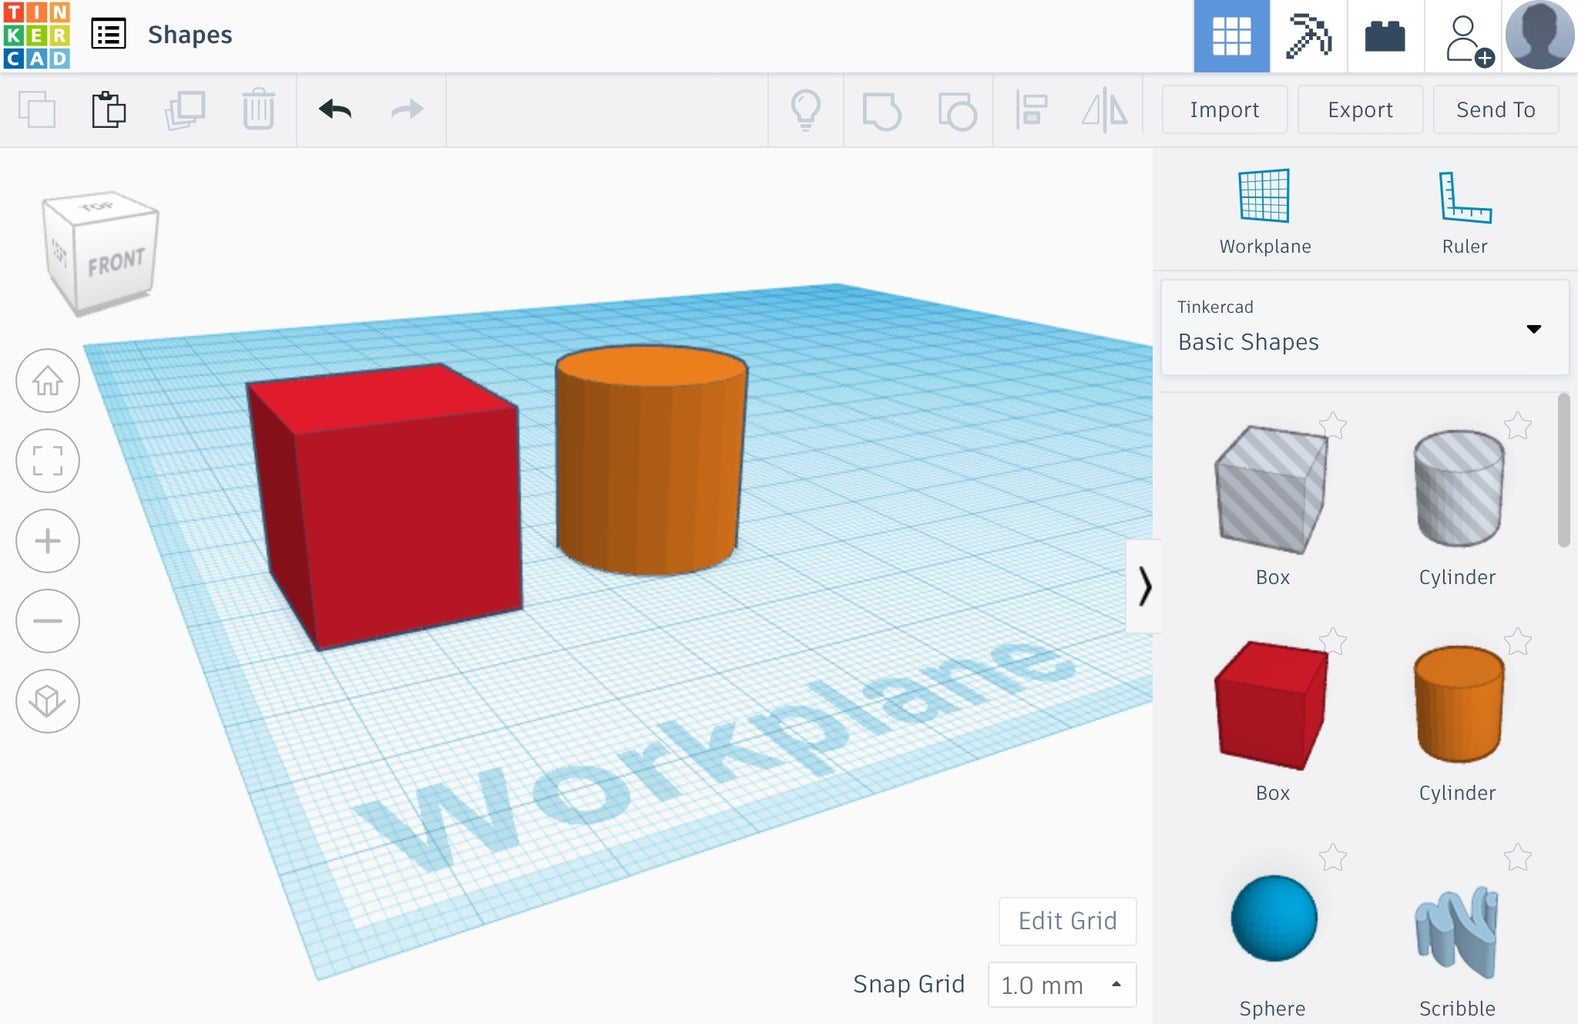 Tinkercad and Shapes